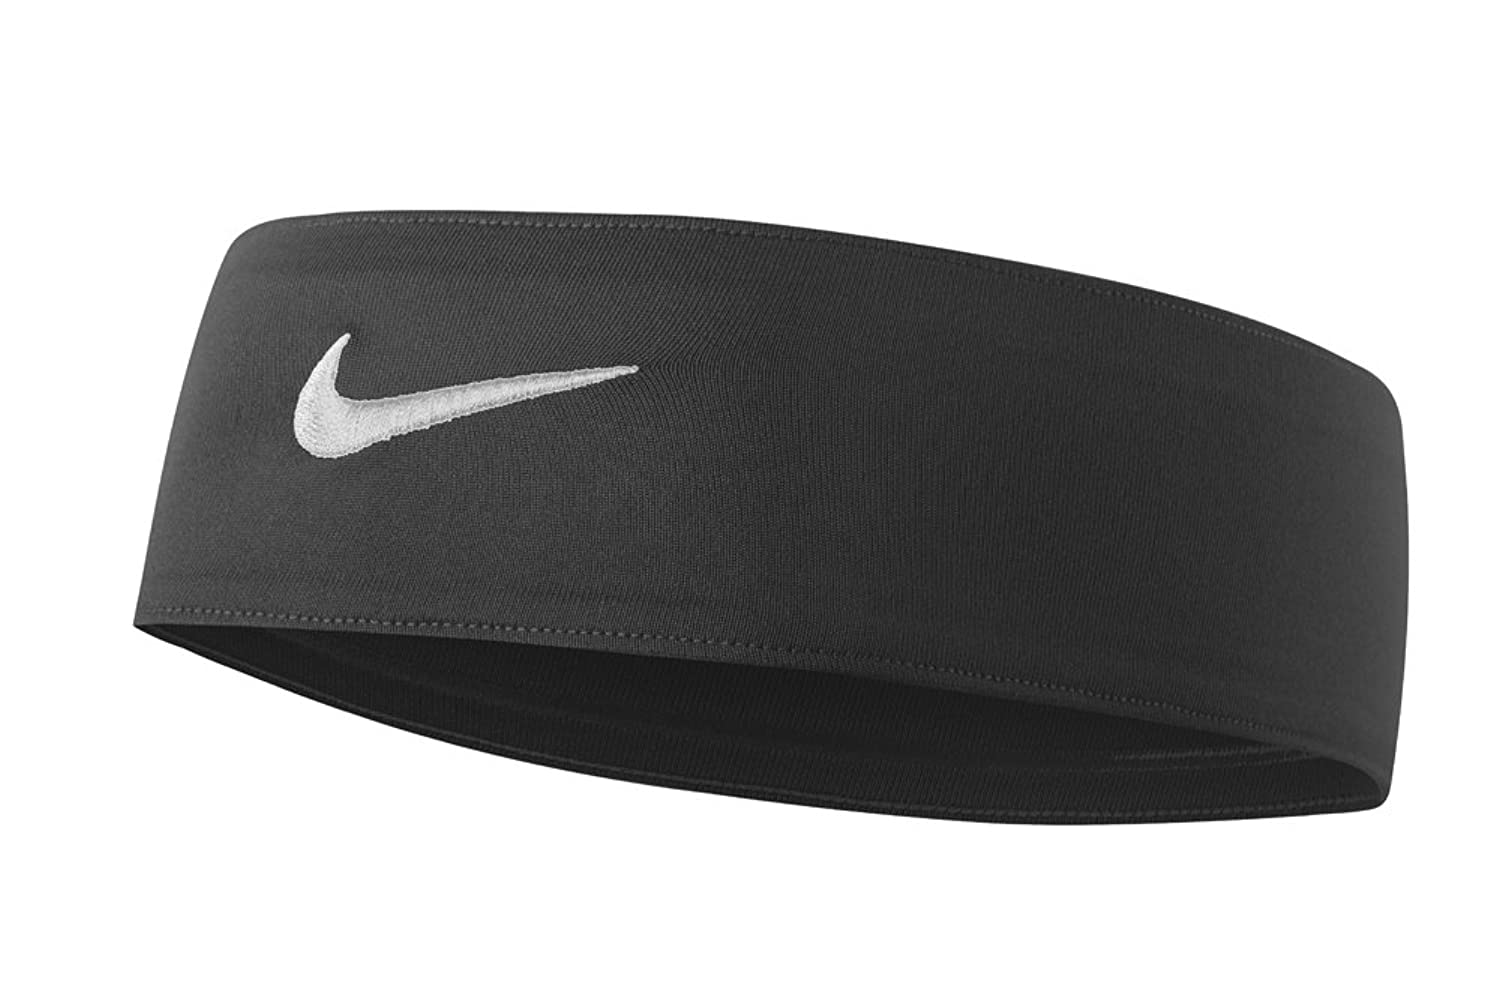 Amazon.com : Nike Solid Fury Headband (One Size Fits Most, Black/White) :  Clothing